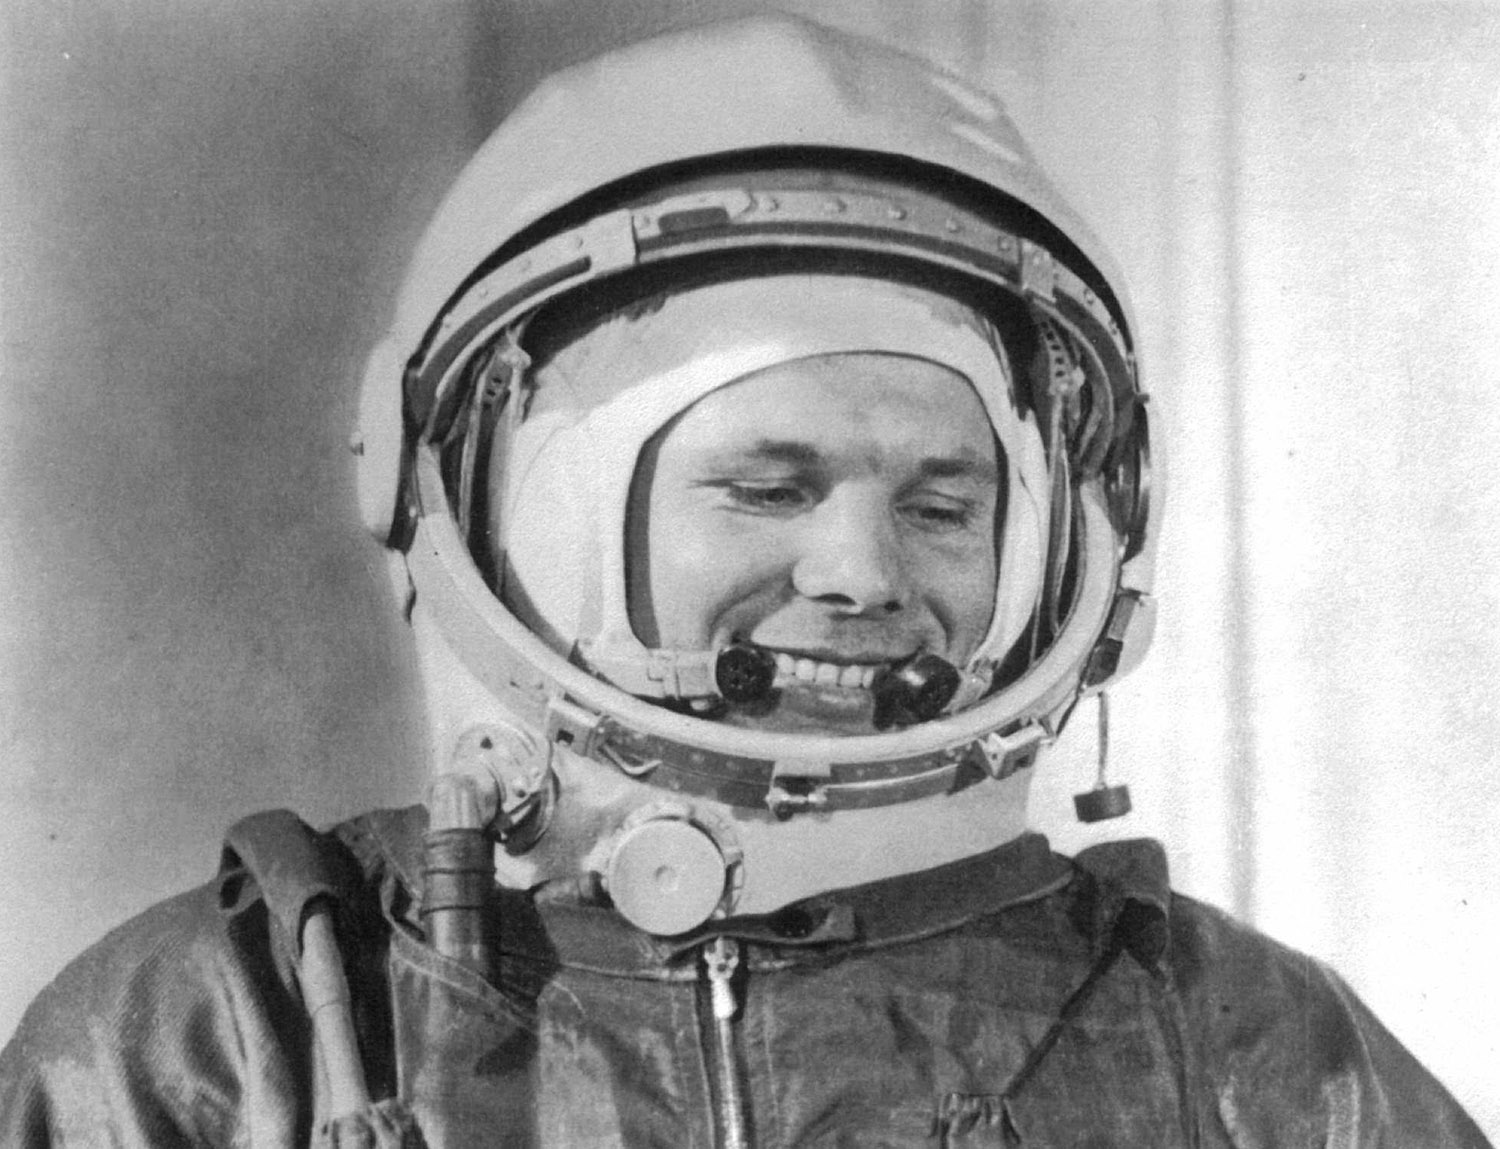 Pilot-cosmonaut_Y._A._Gagarin_in_his_flight_suit